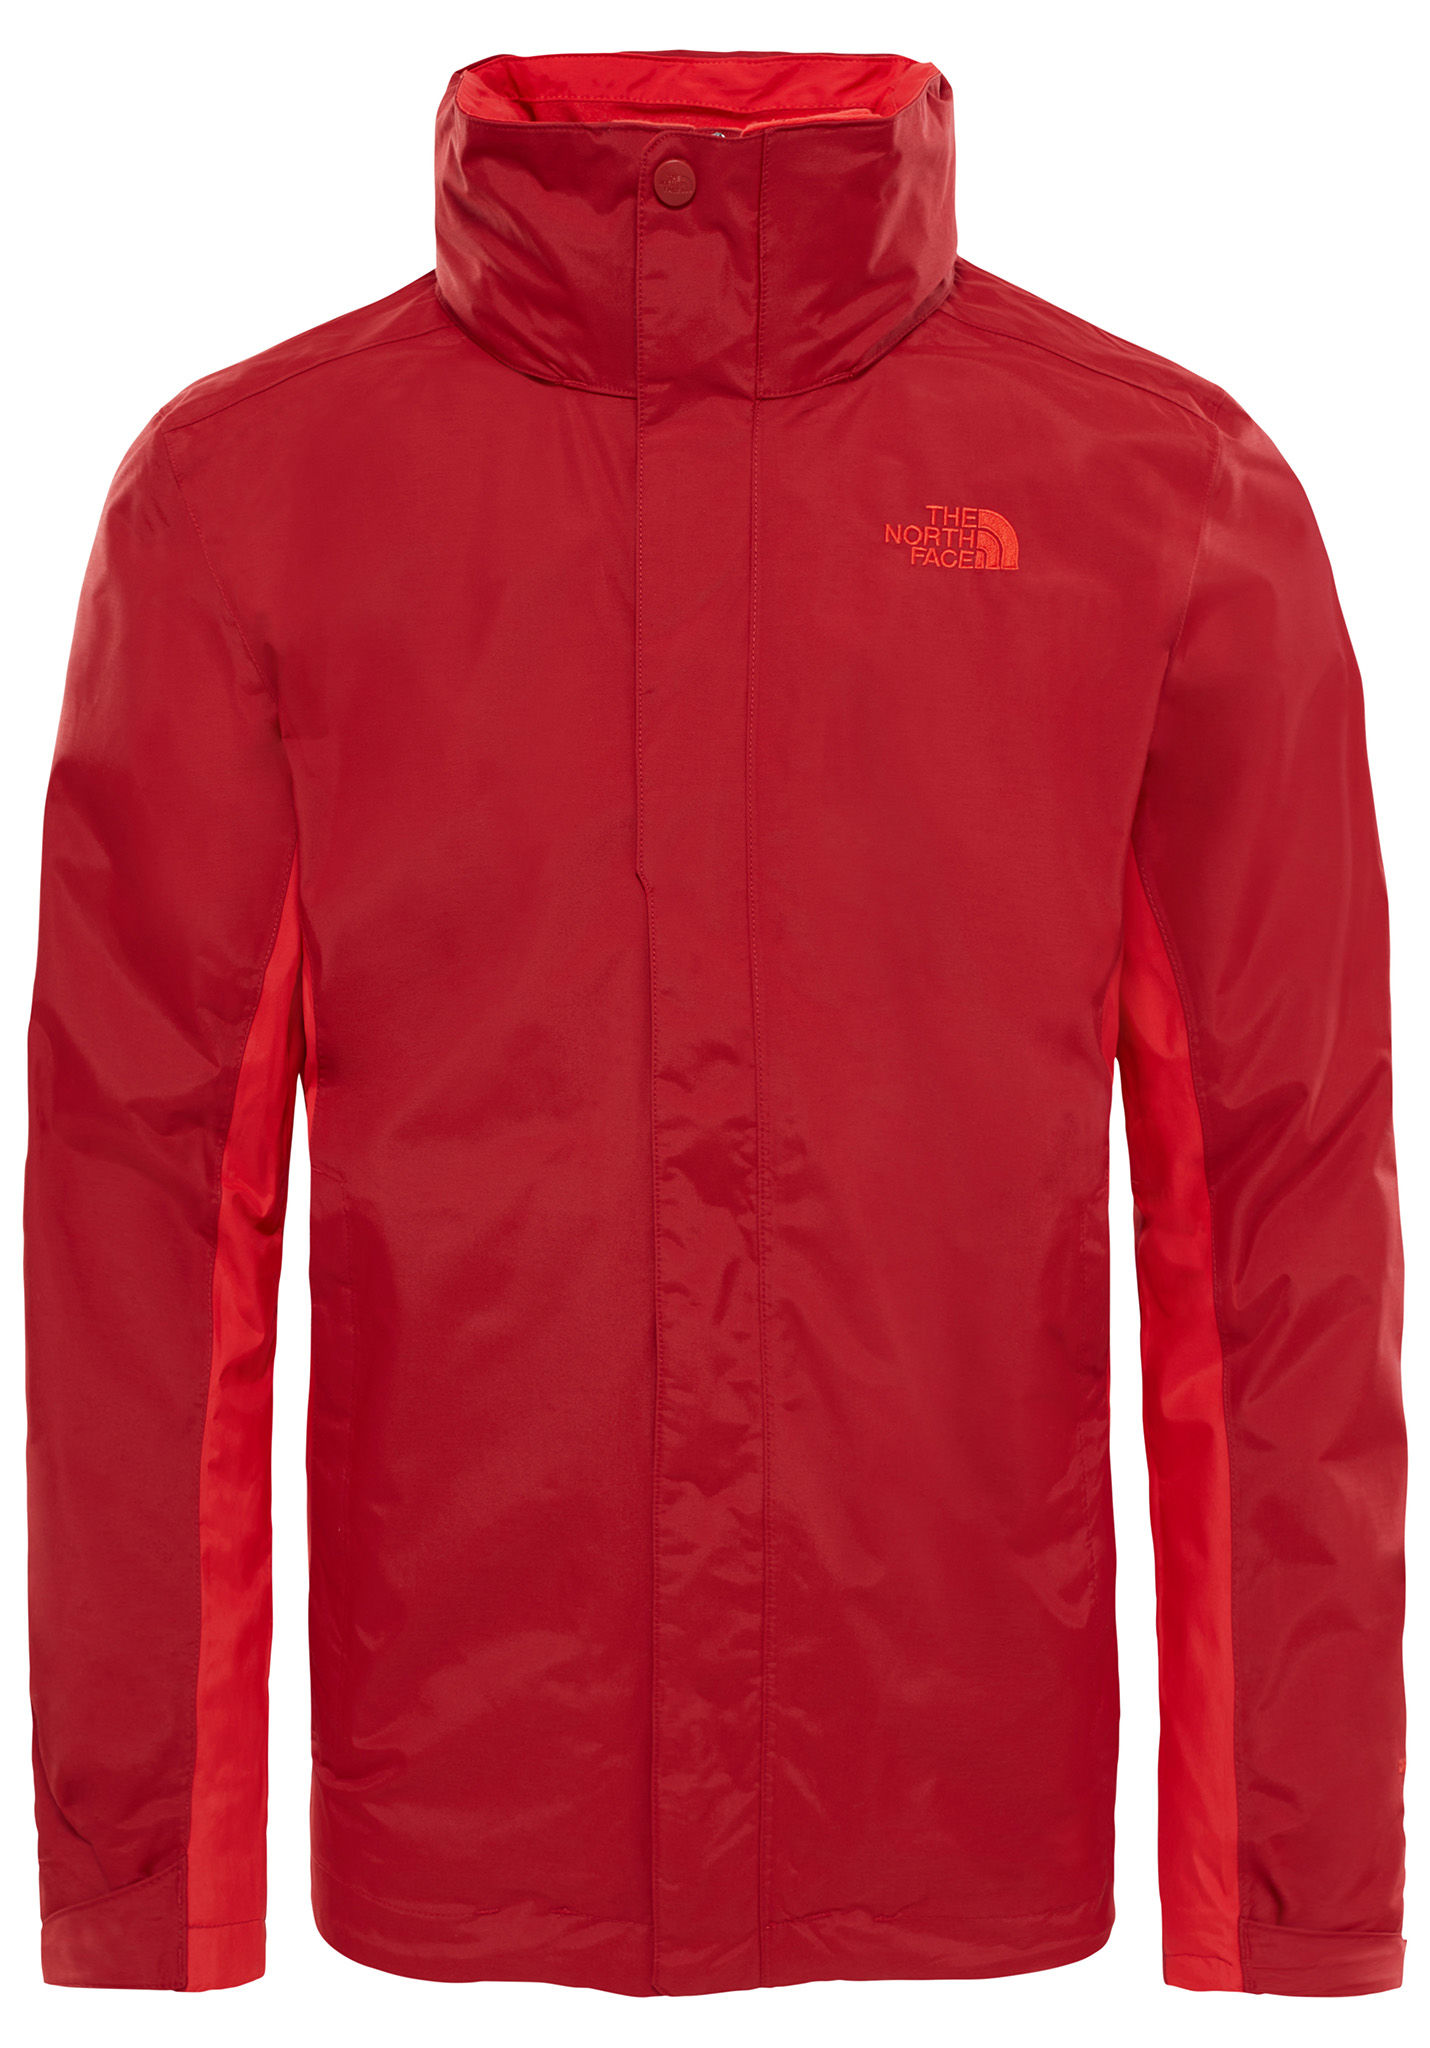 THE NORTH FACE Evolution II Triclimate - Giacca outdoor per Uomo - Rosso -  Planet Sports 4c120378ba86